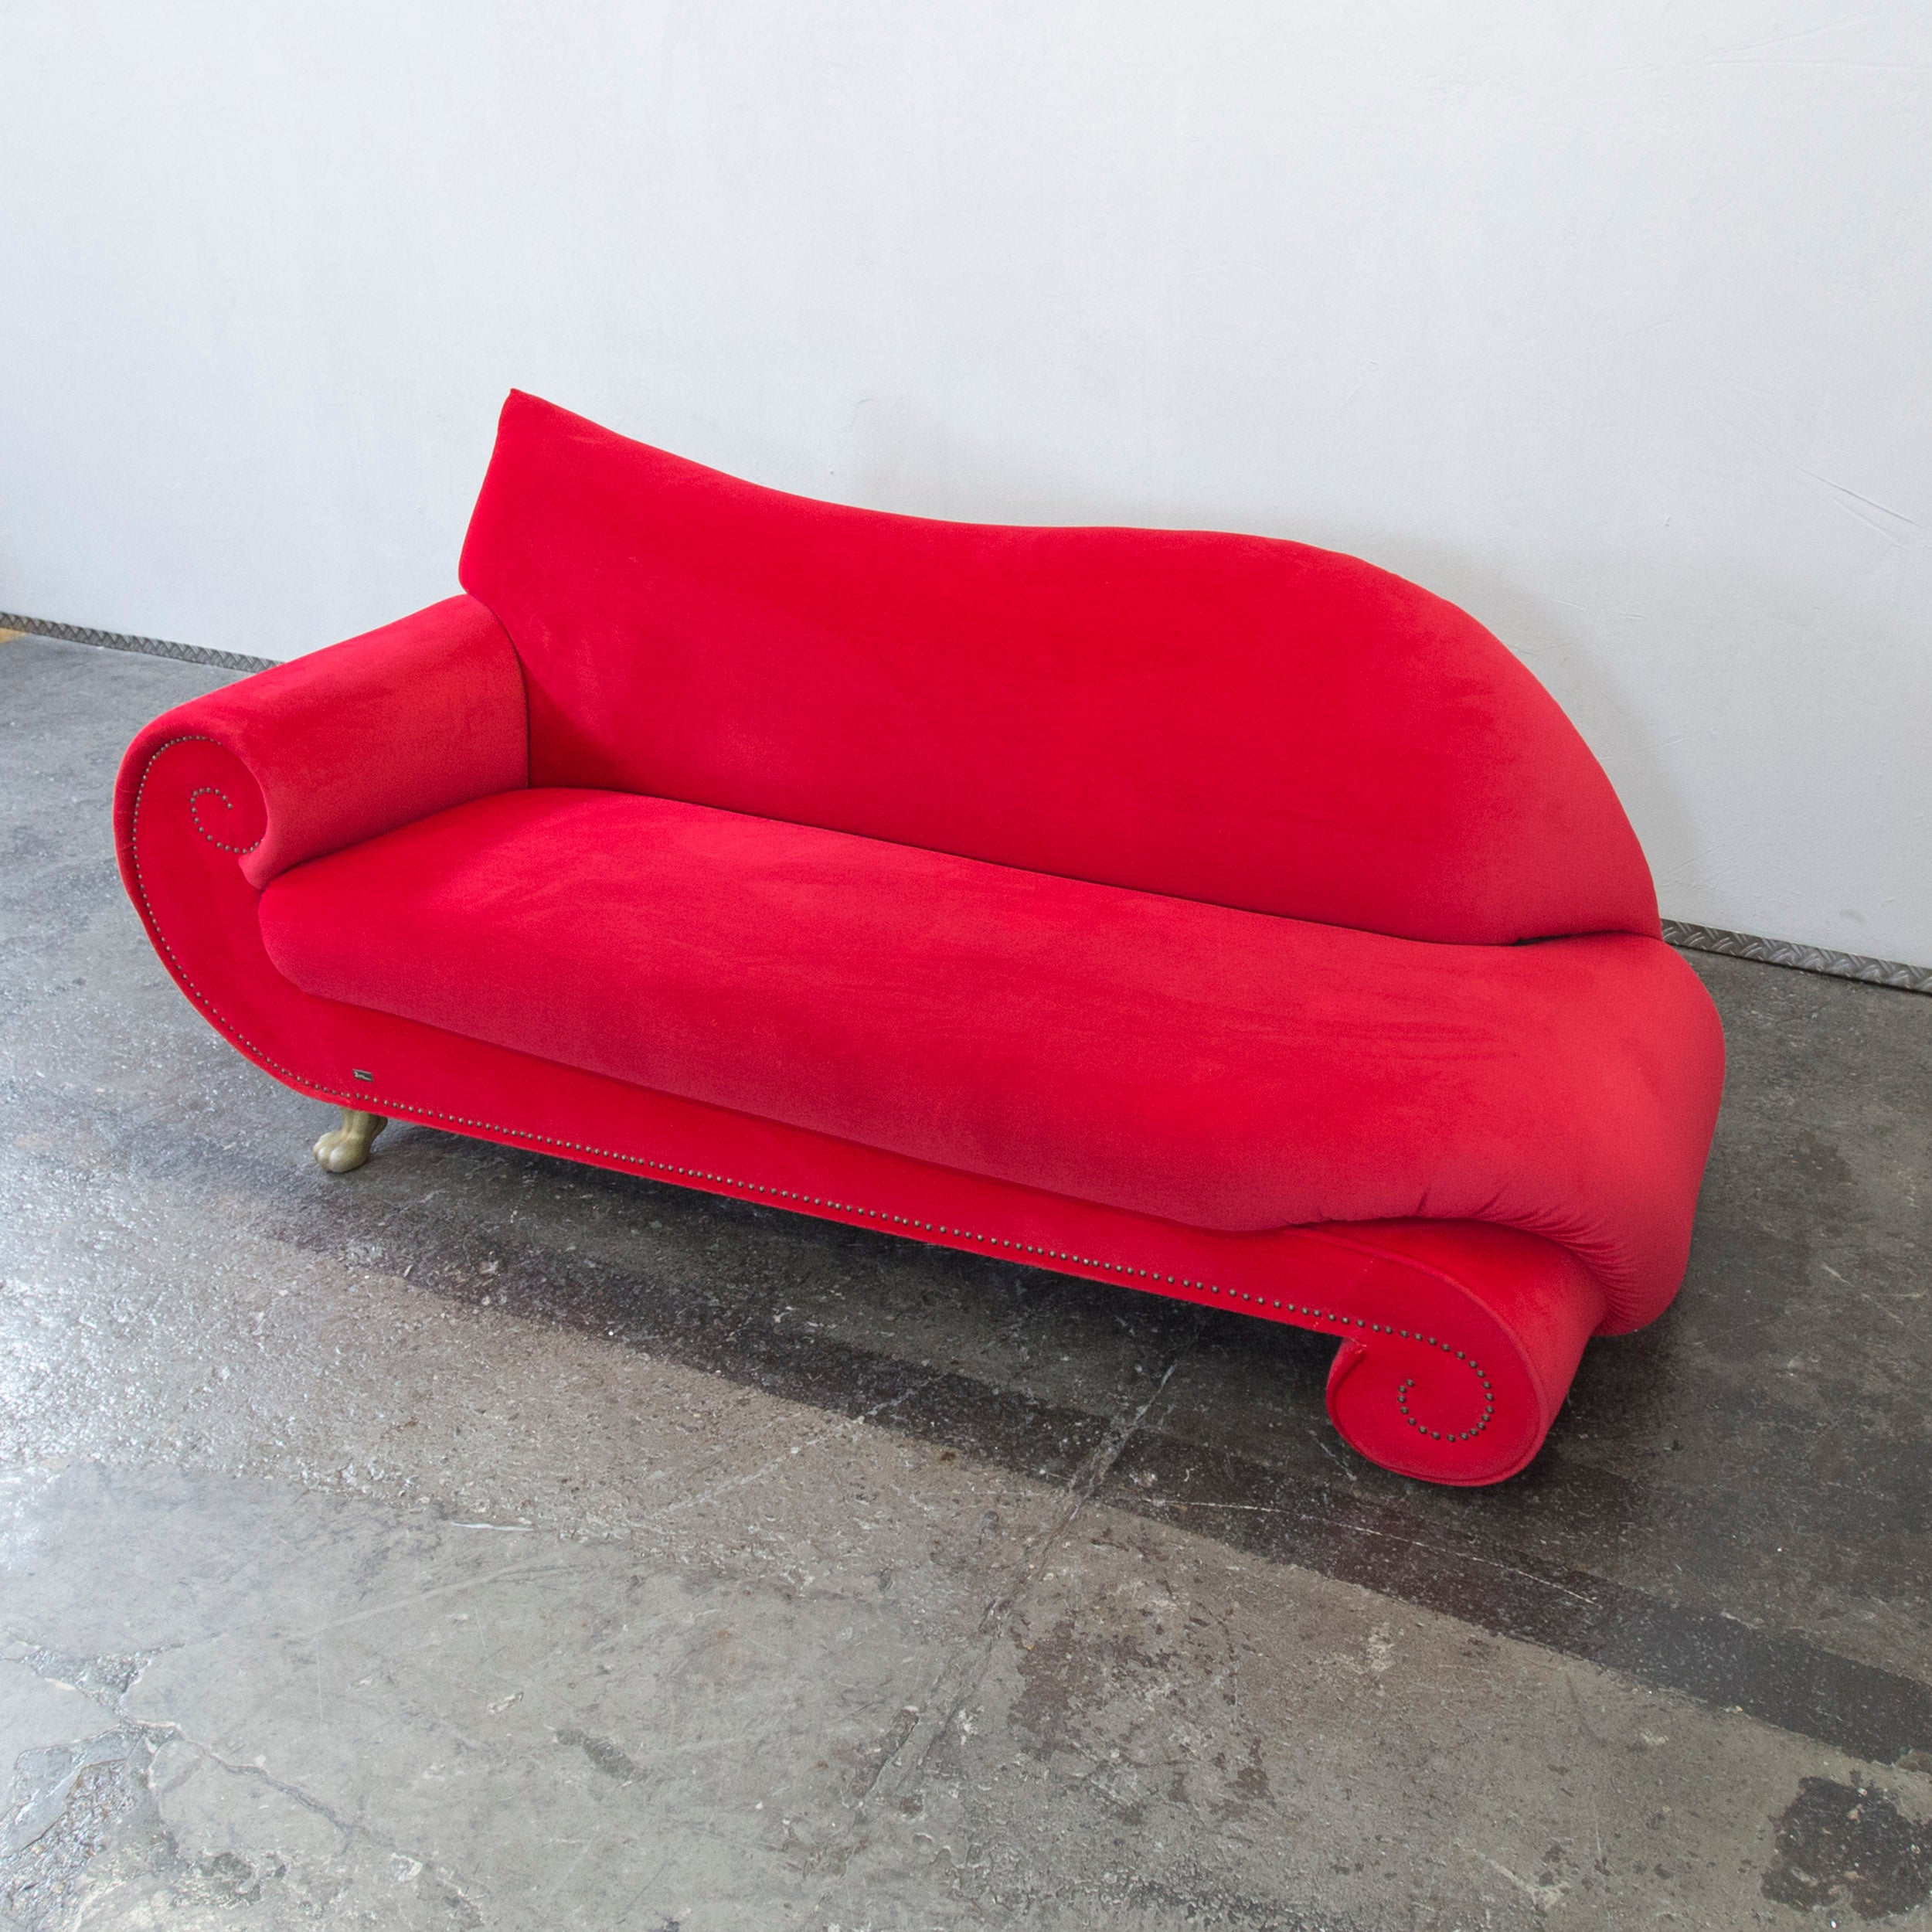 Chaiselongue Recamiere Original Bretz Gaudi Designer Sofa Red Fabric Chaiselongue Recamiere Three Seat